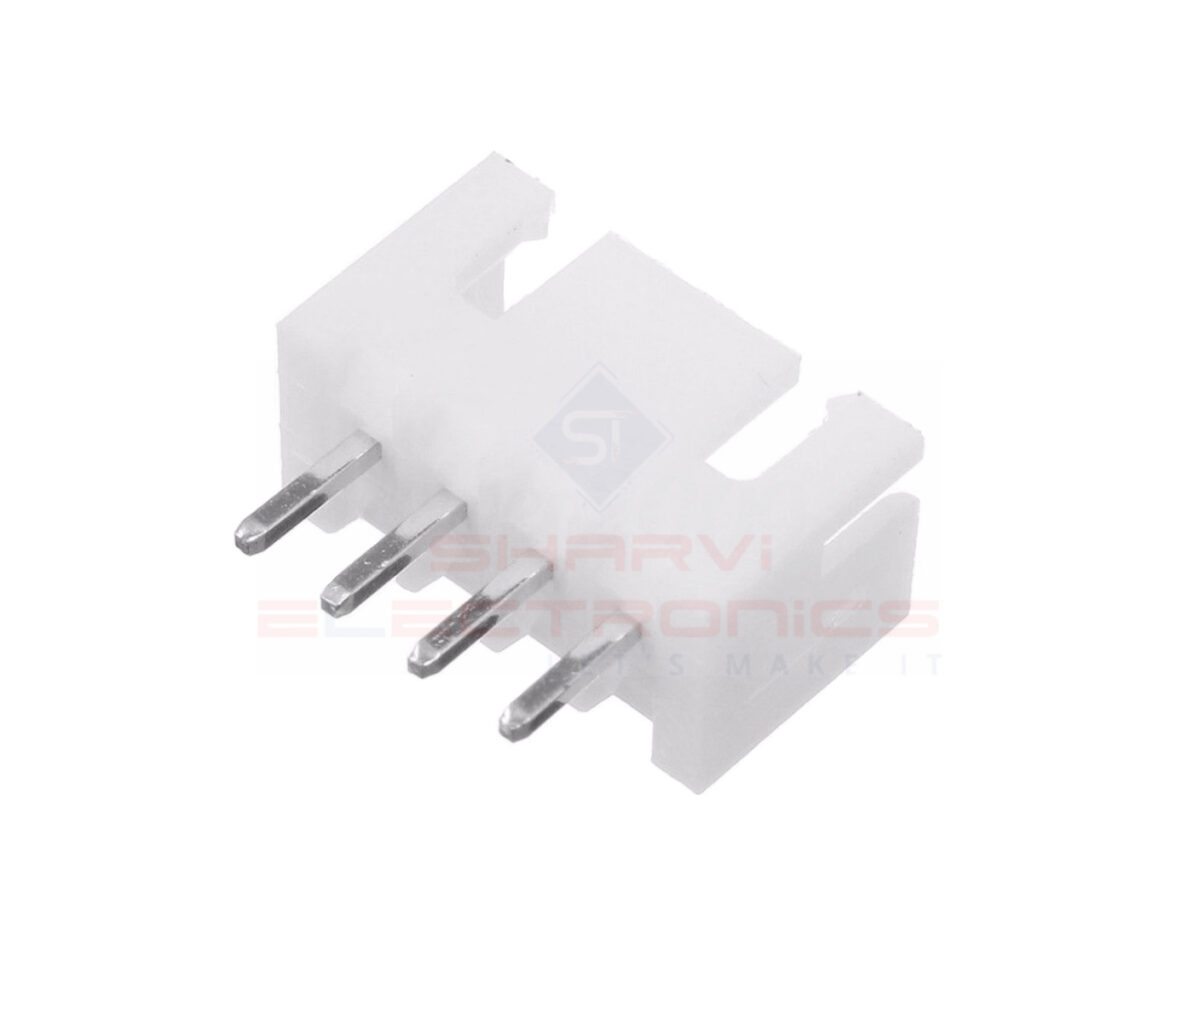 Sharvielectronics: Best Online Electronic Products Bangalore   JST XH 4 Pin Connector 4 Pin Male Relimate Polarized Connector   Electronic store in bangalore